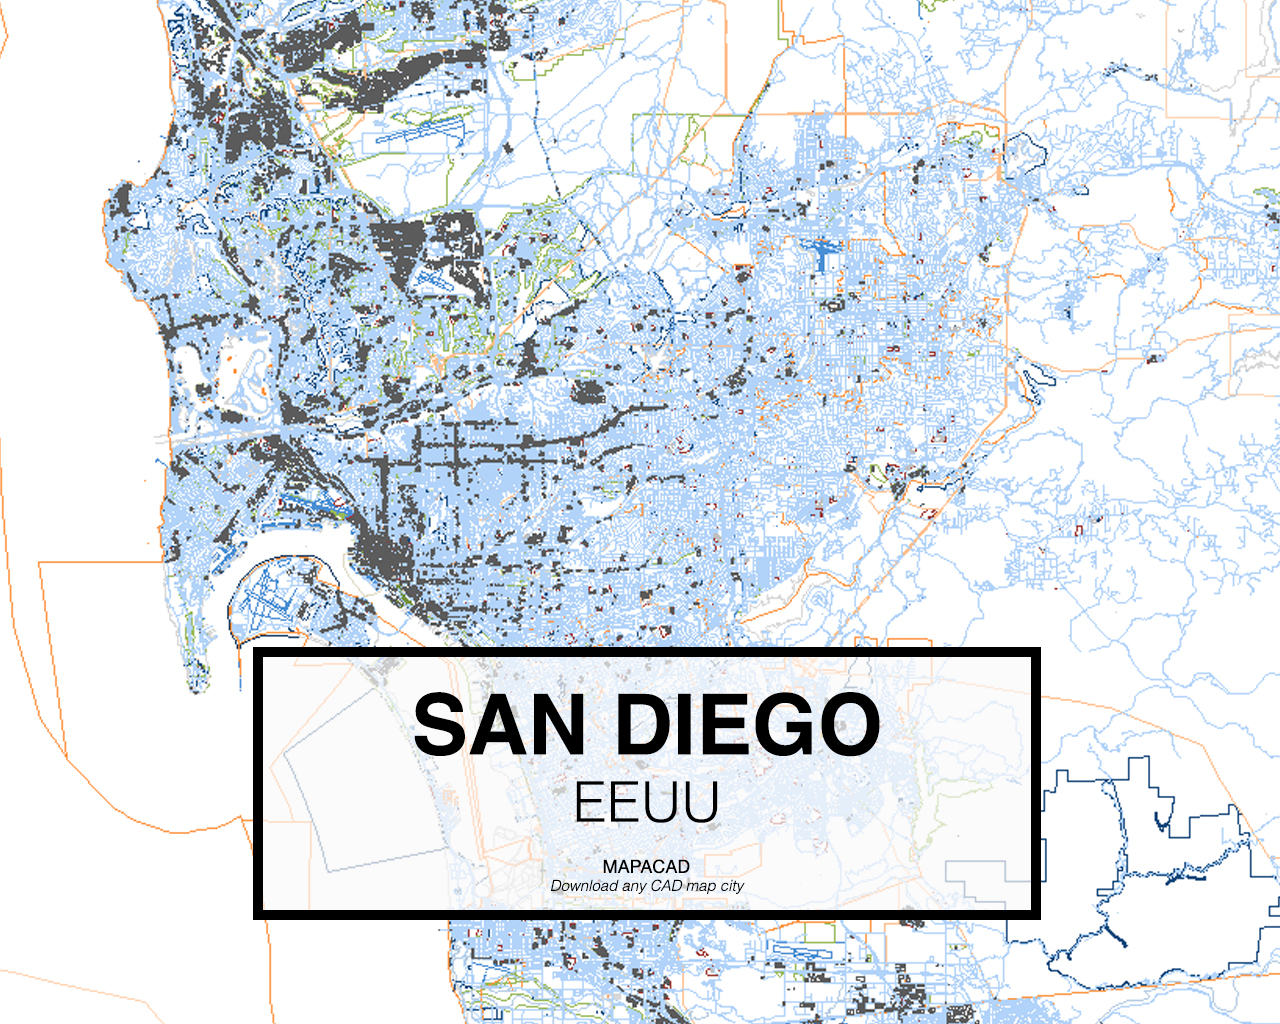 Download san diego dwg mapacad san diego eeuu 01 mapacad download map cad gumiabroncs Gallery